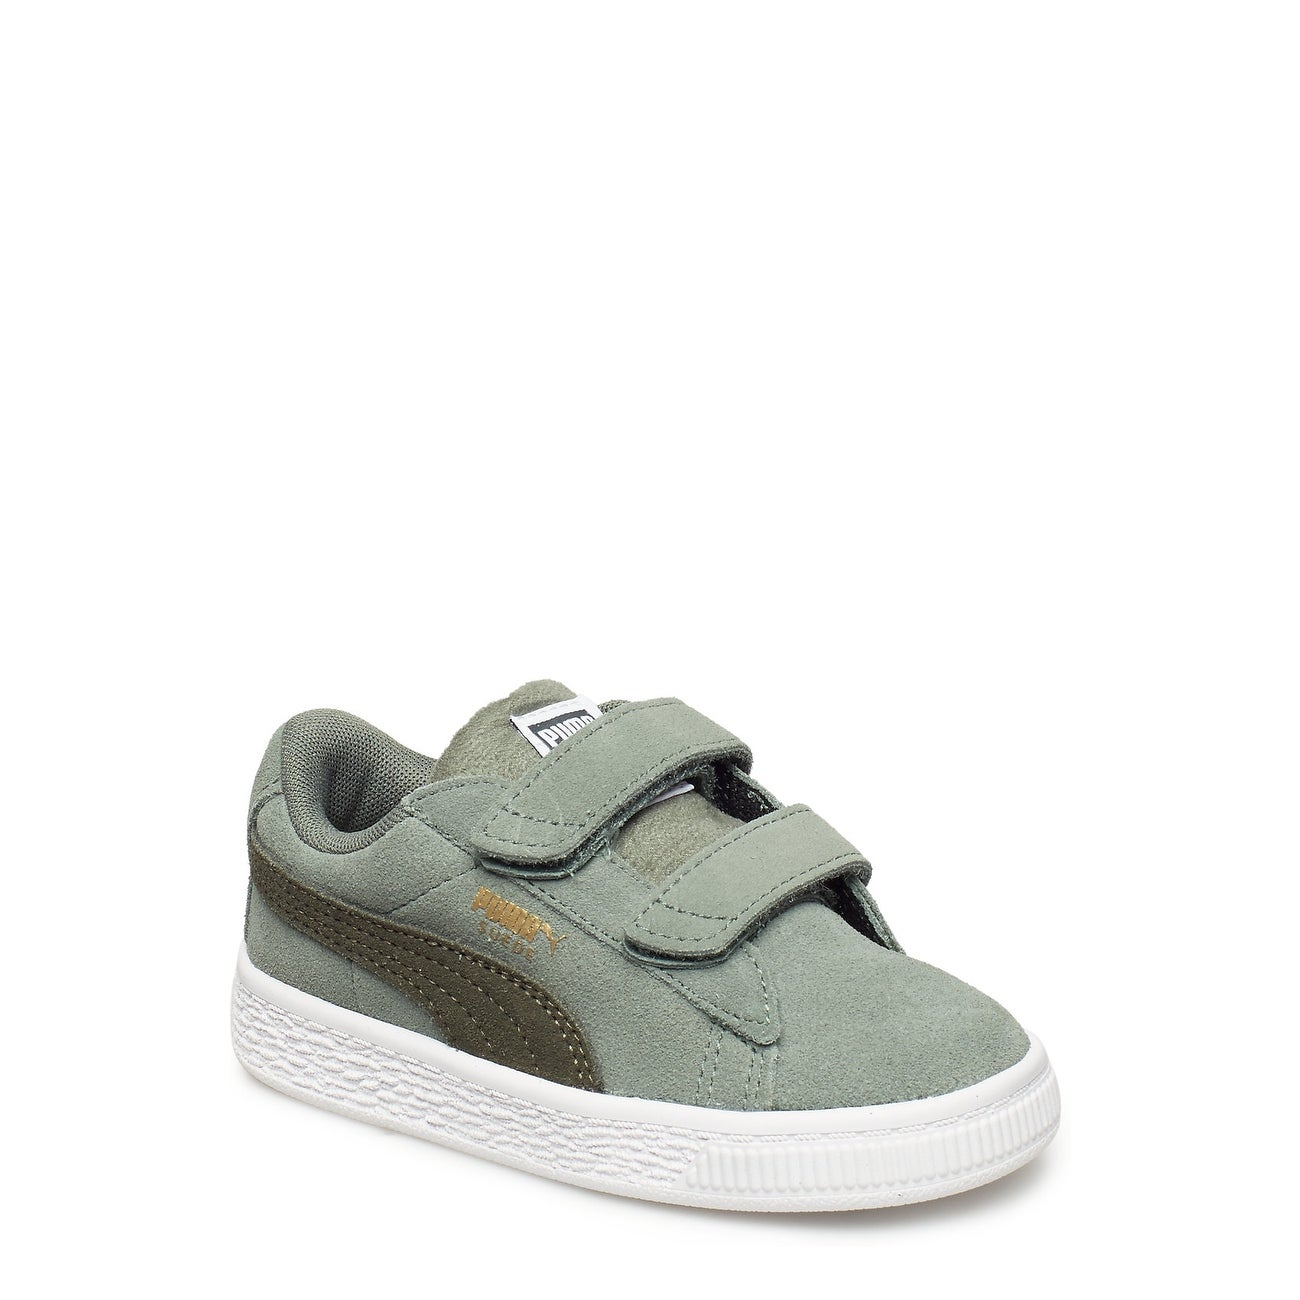 404b4840fc638a Shop Kids Puma Girls Classic V Inf Suede Low Top Fashion Sneaker ...